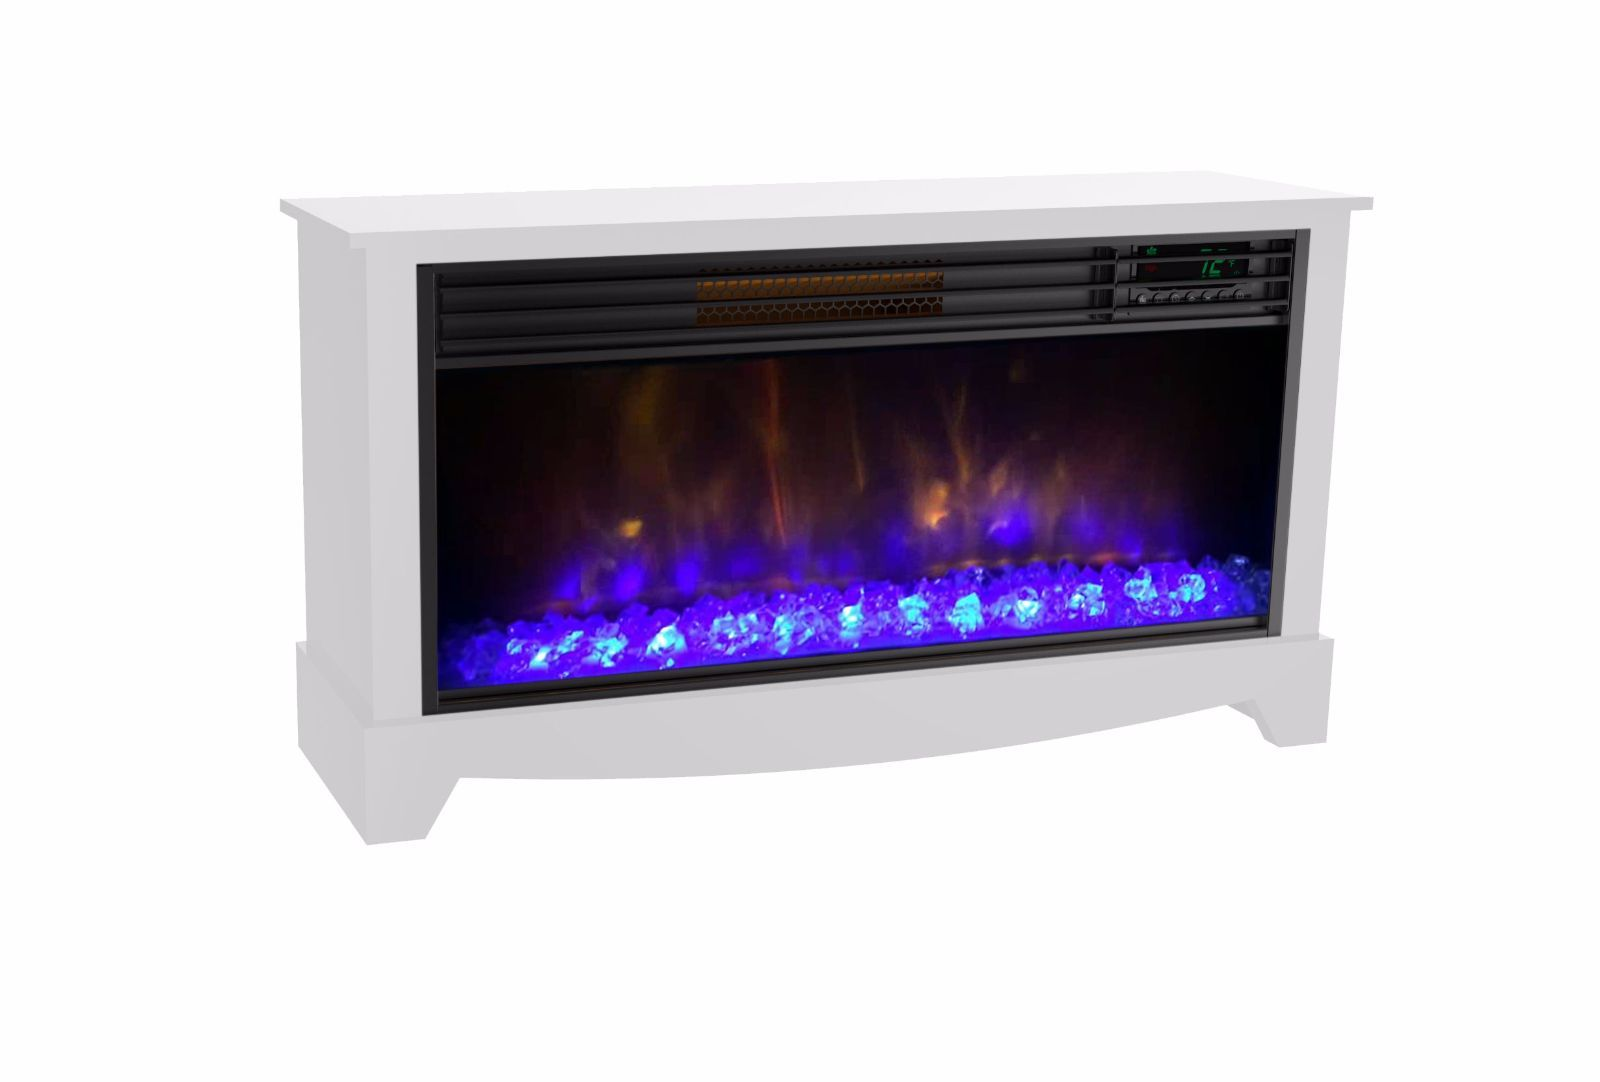 lifesmart lifezone electric infrared media fireplace room